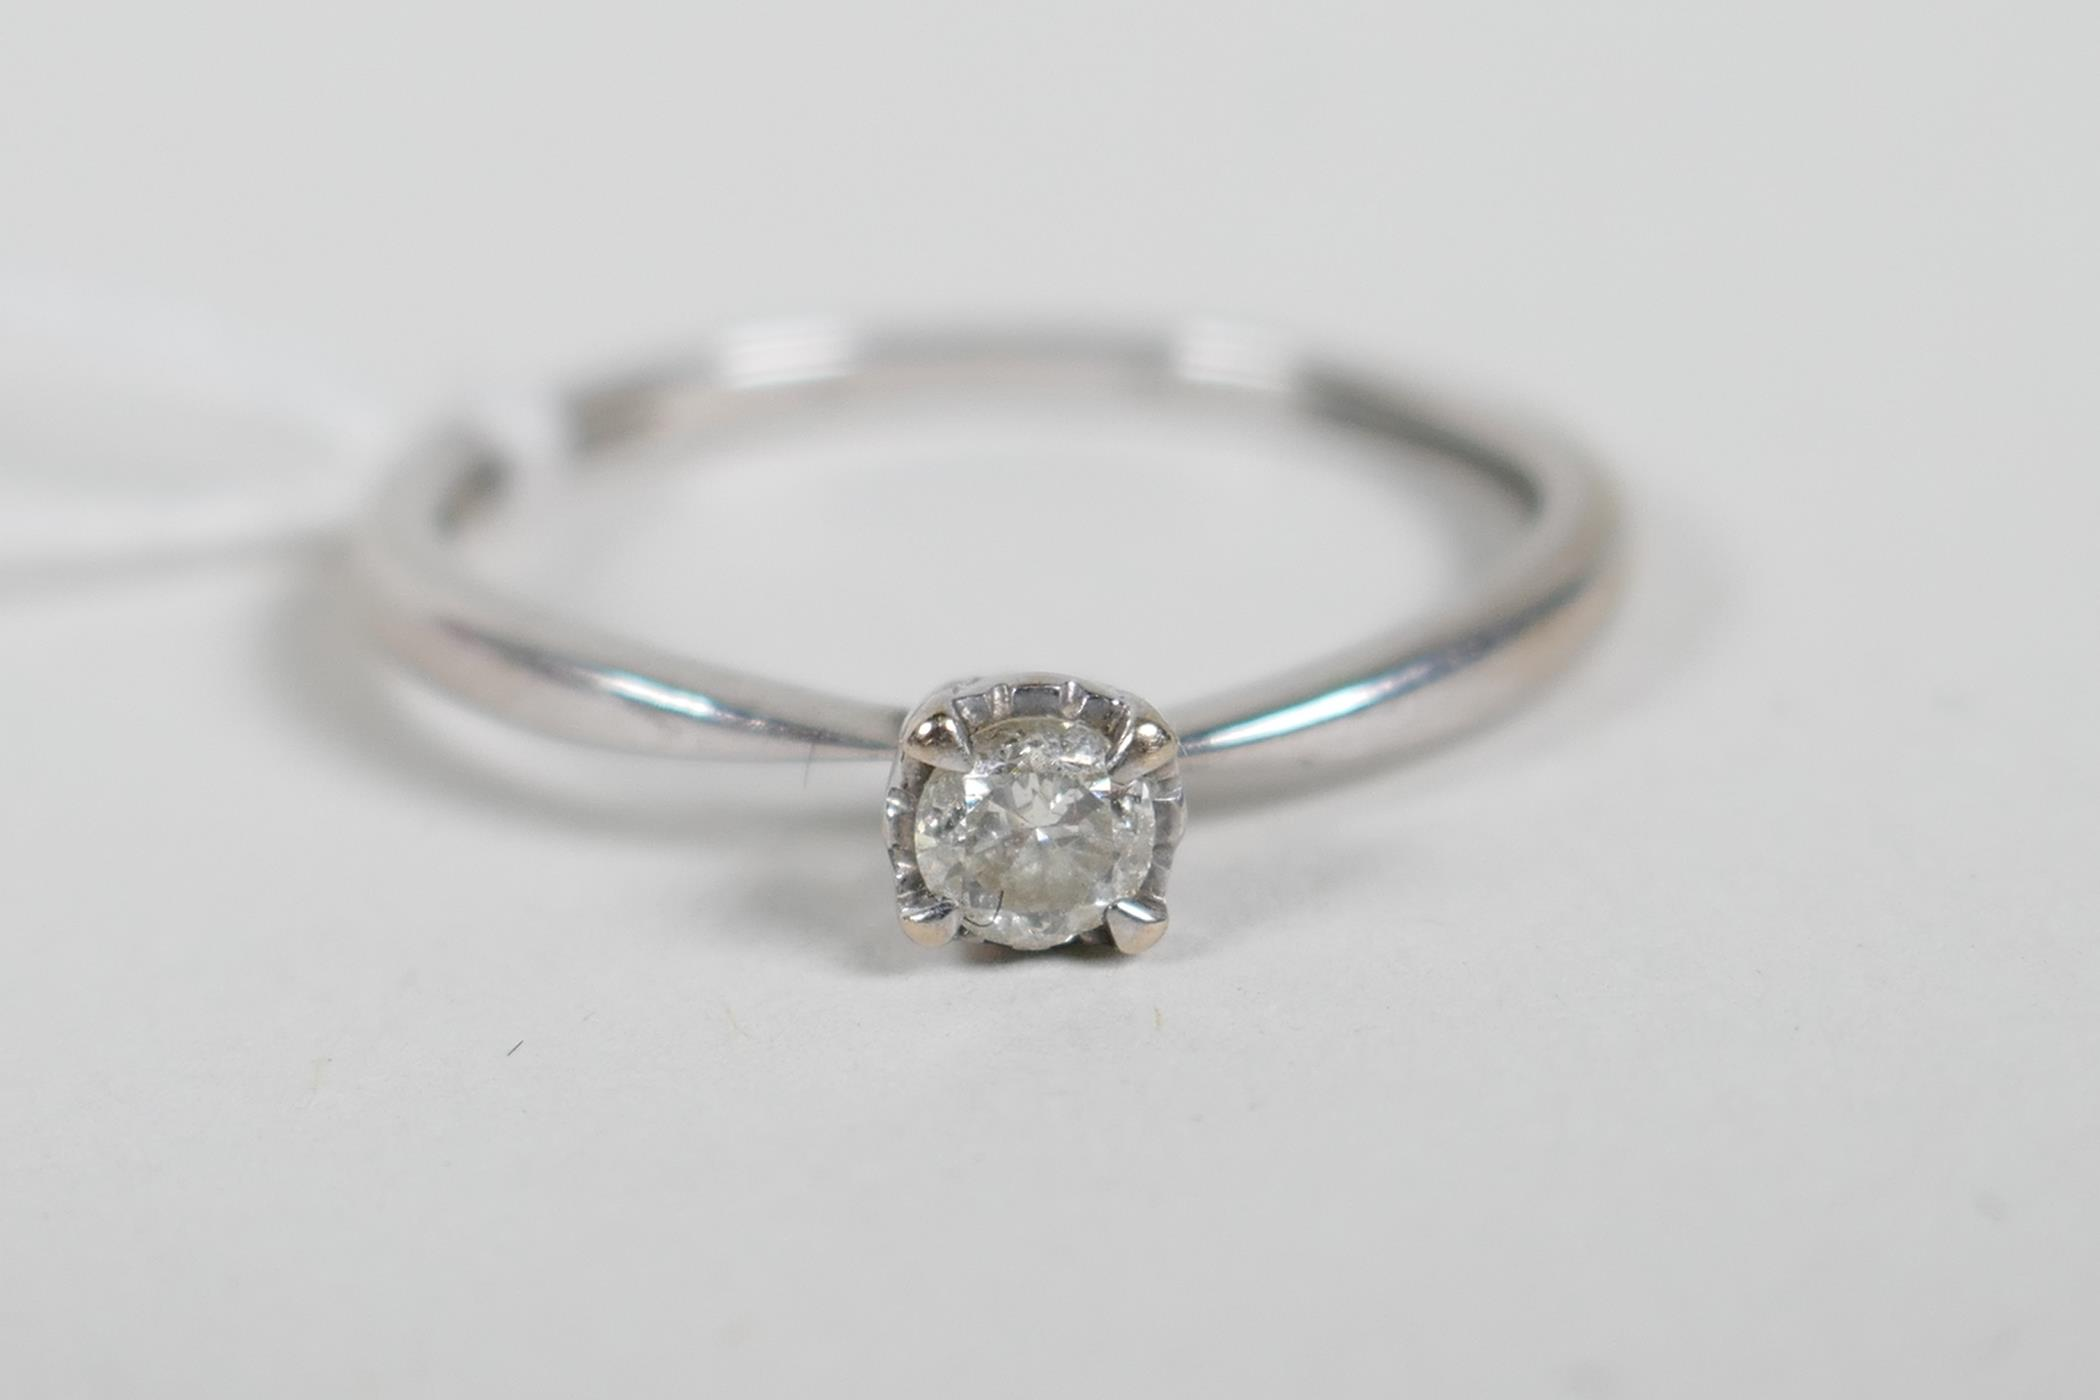 An 18ct white gold and diamond engagement ring, approximate size 'N'